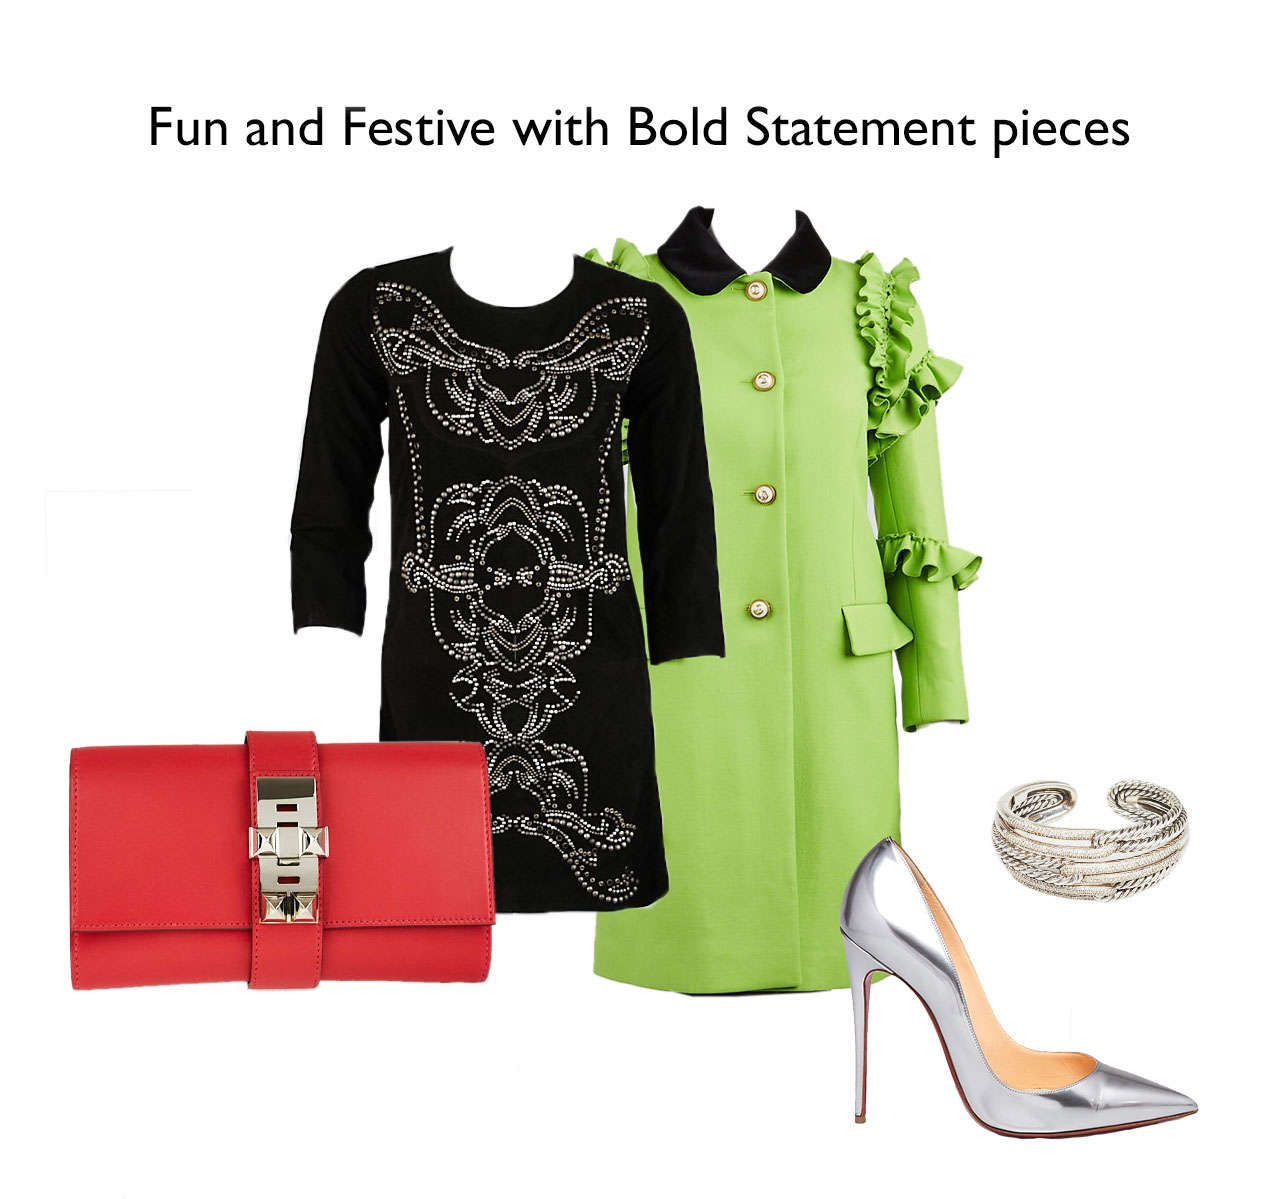 Festive Holiday Party Outfit Idea For Christmas | Yoogi's Closet Authenticated Pre-Owned Luxury yoogsicloset.com